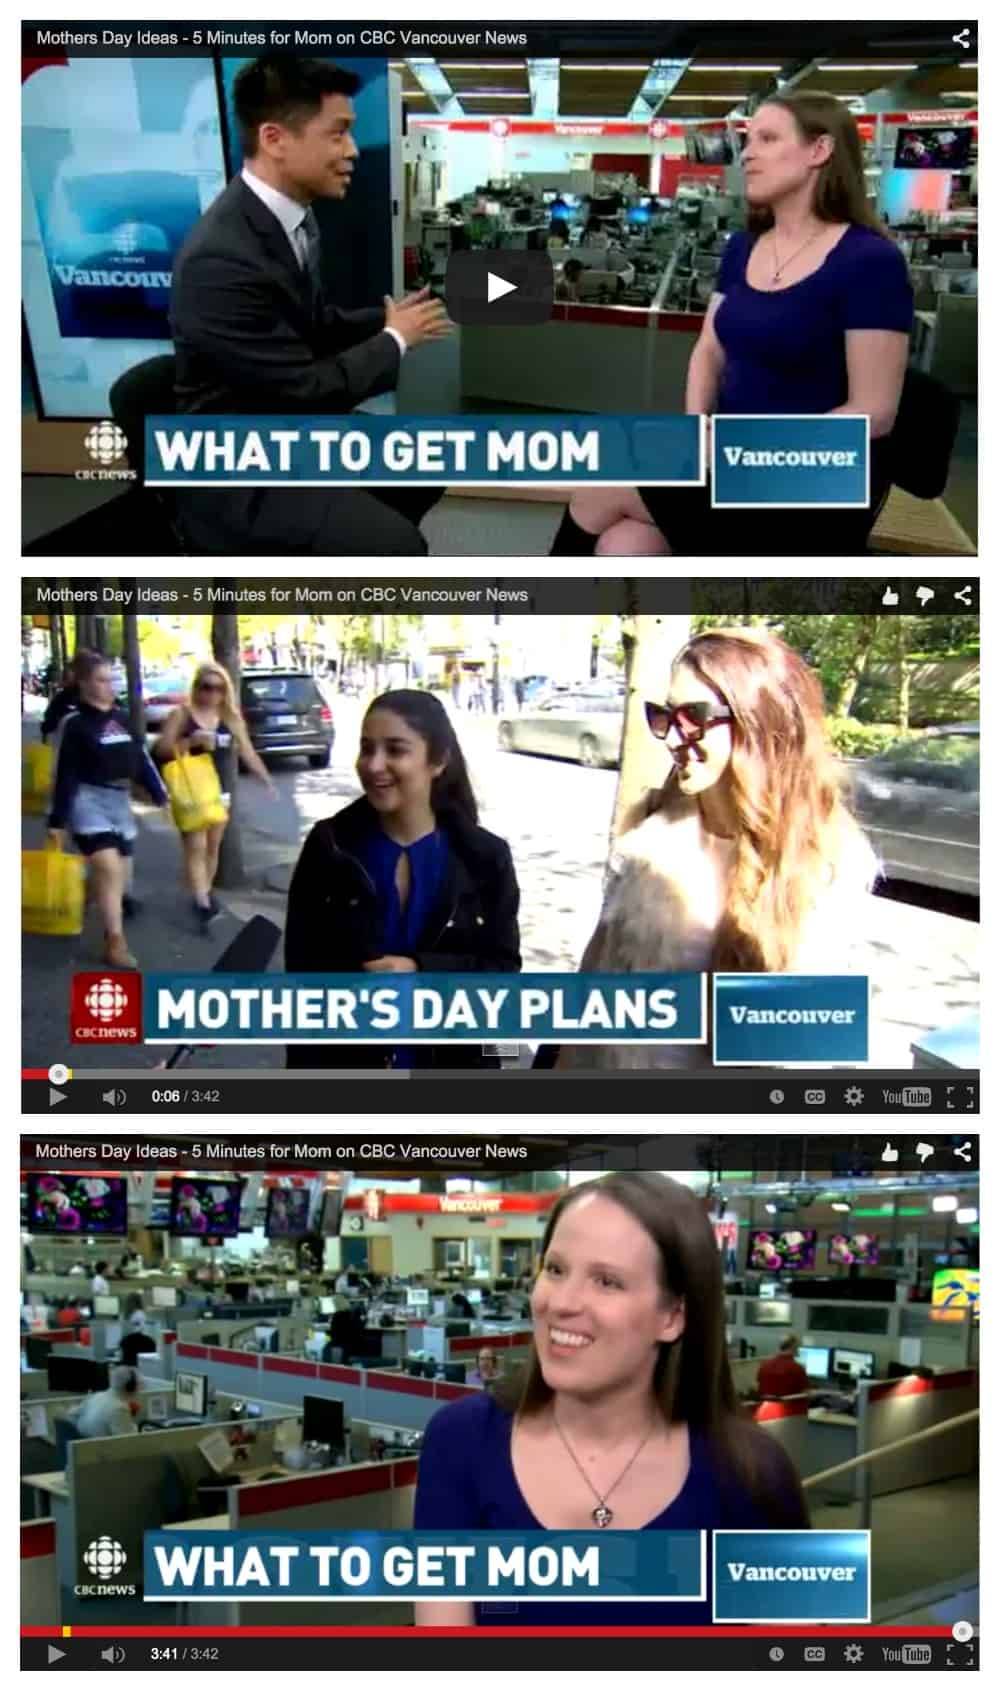 CBC News - Mothers Day